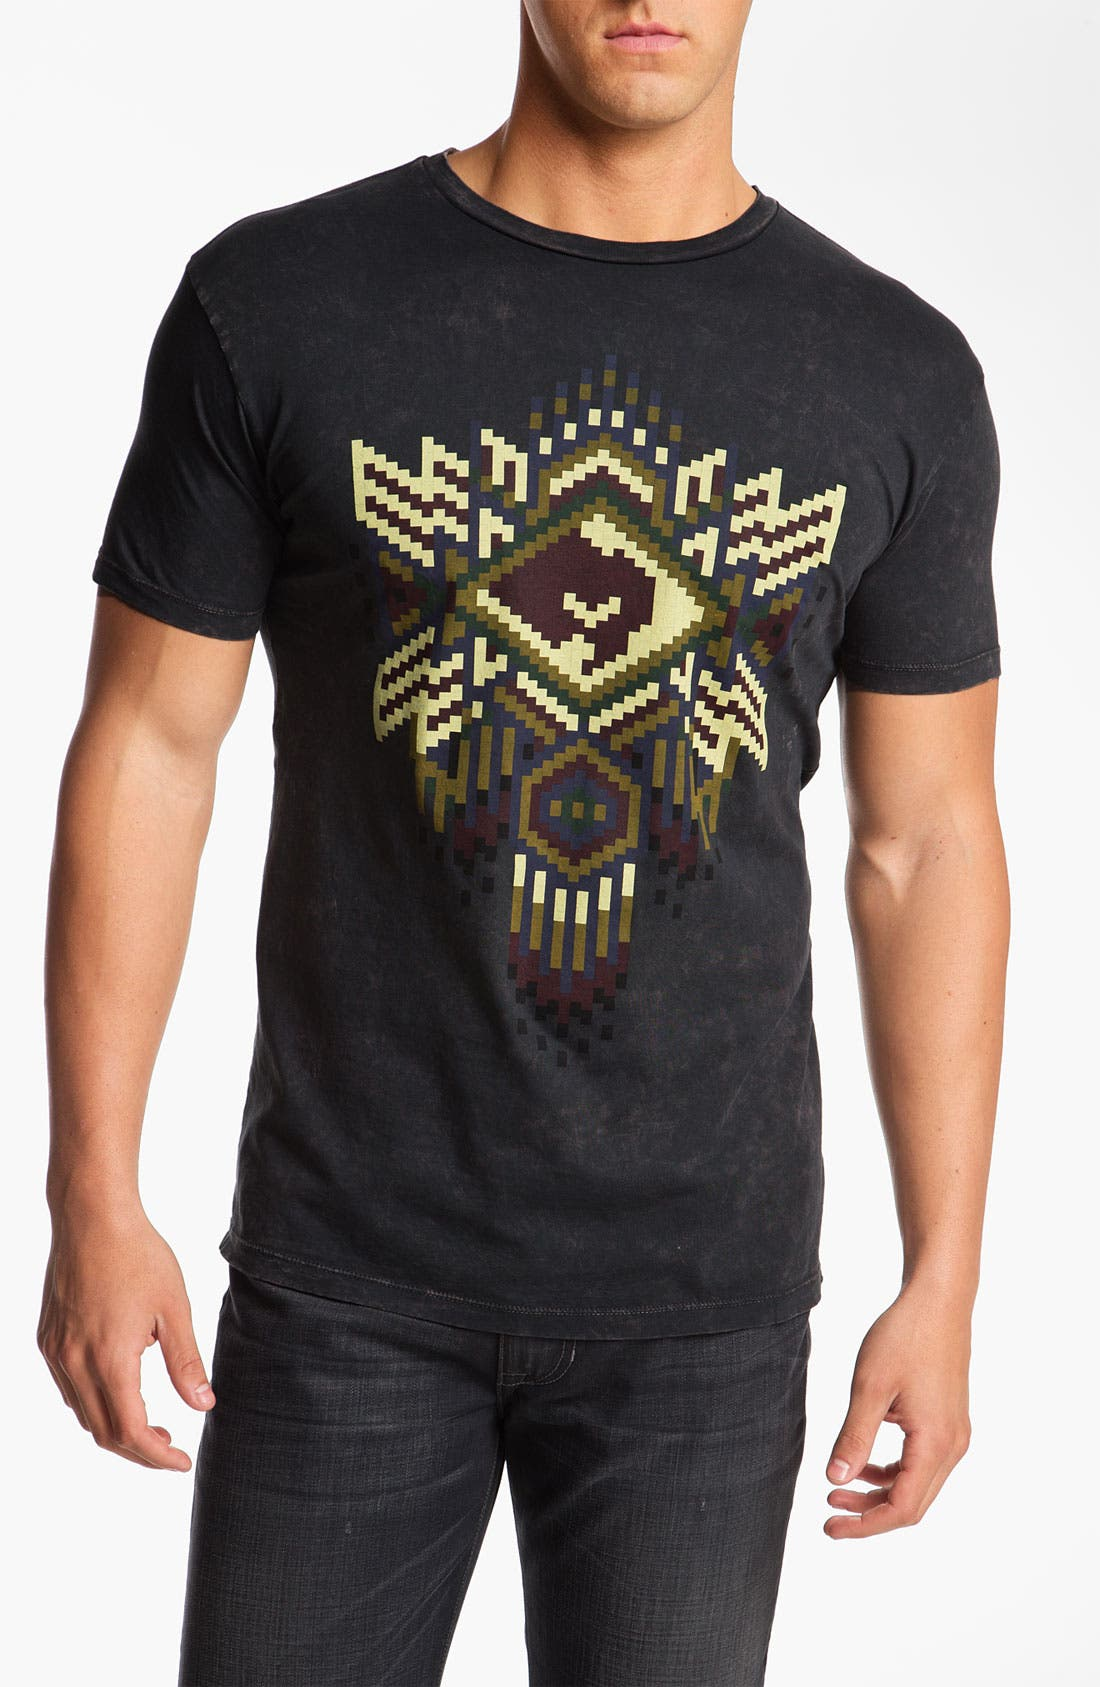 Alternate Image 1 Selected - Obey Pixel Graphic T-Shirt